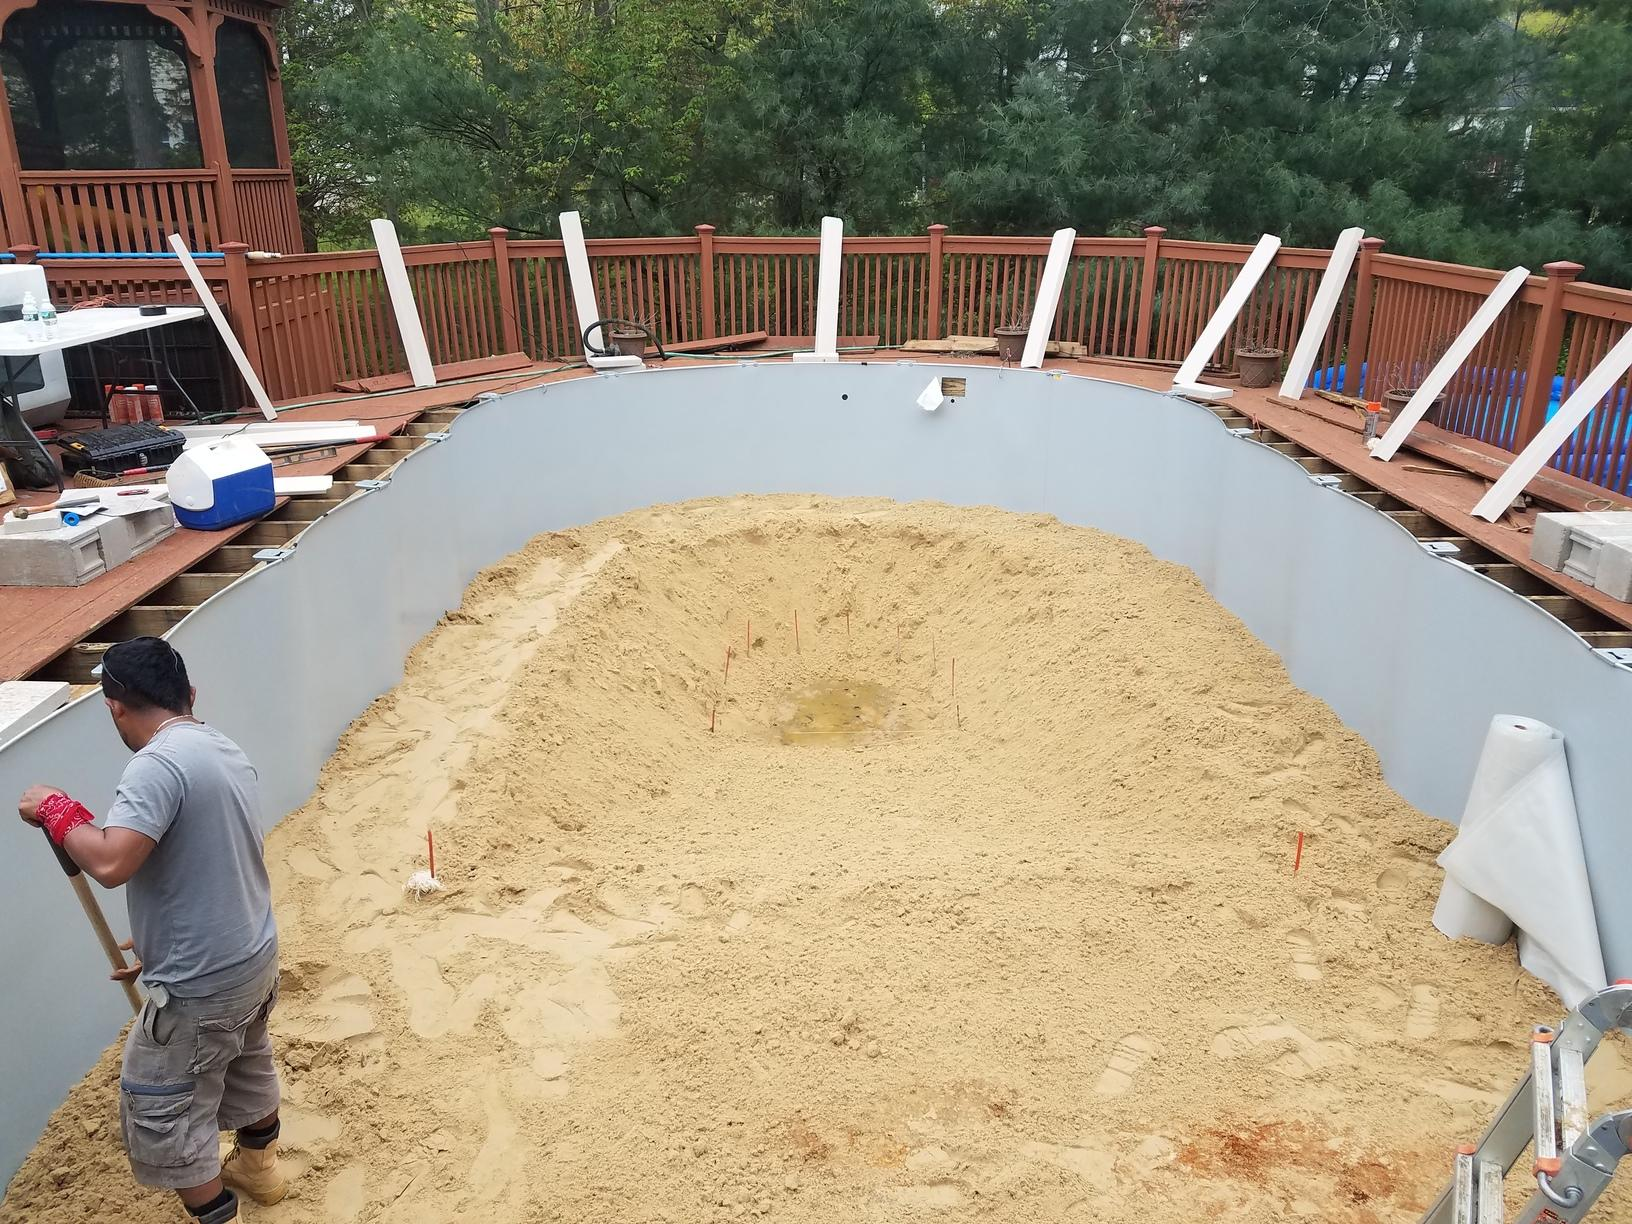 Pool Take Down and Re-Installation in Freehold, NJ